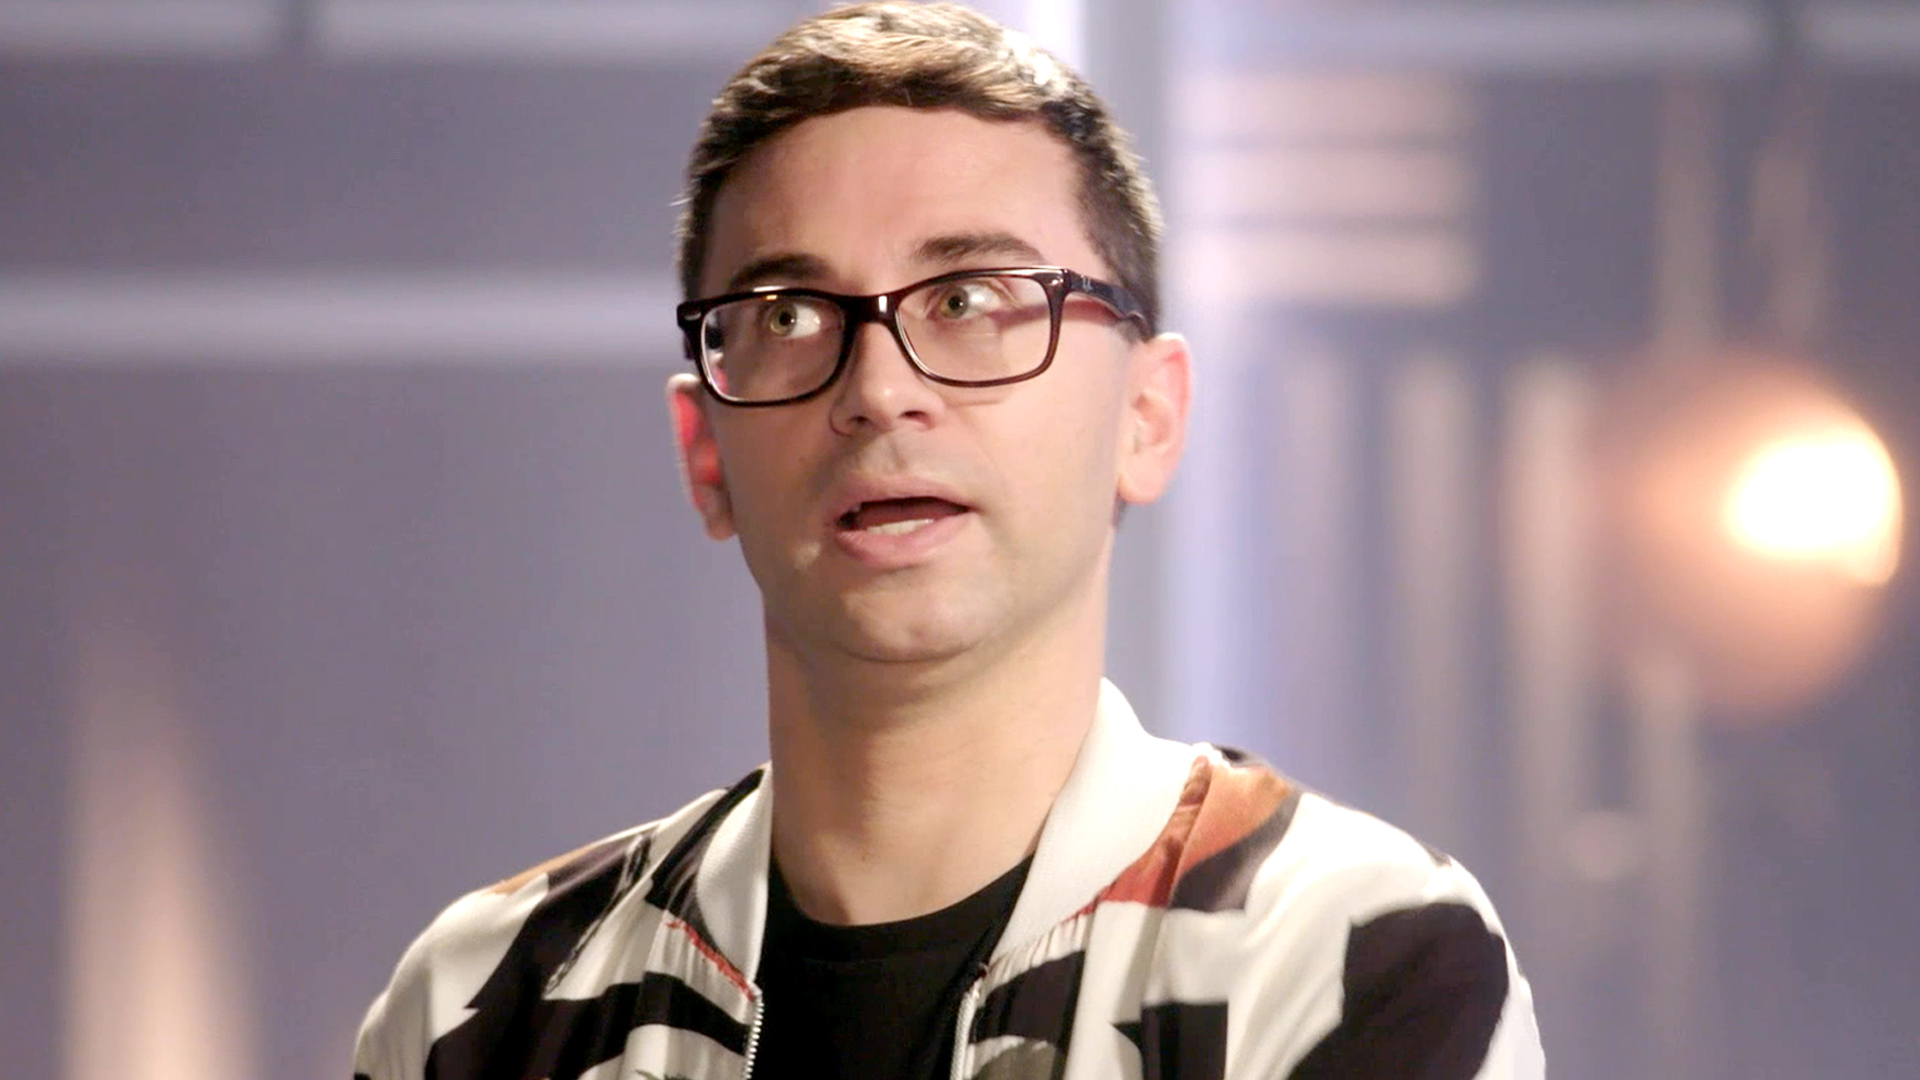 Who Does Christian Siriano Think Will Win Season 18 of Project Runway?